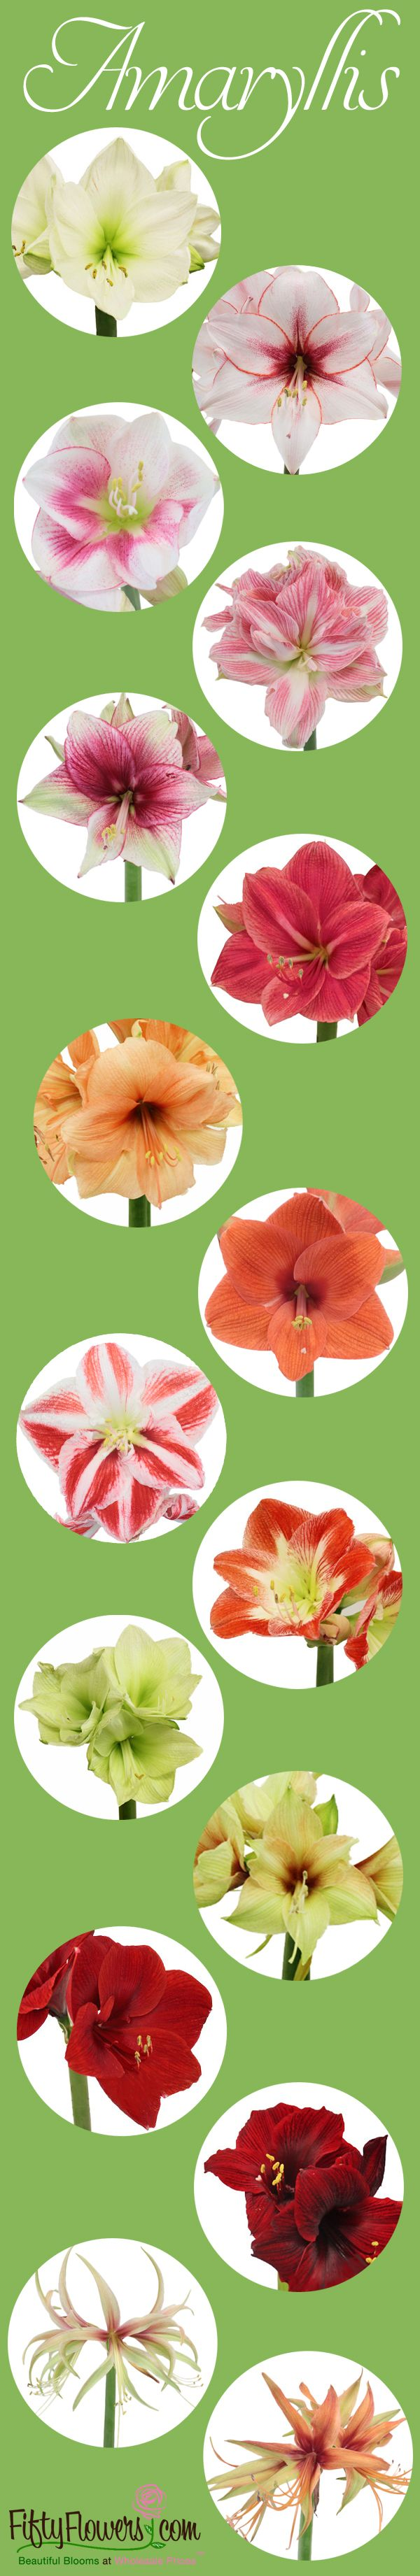 Holiday arrangements wholesale bulk flowers fiftyflowers - New Varieties And Lower Prices On Our Fresh Amaryllis Flowers Perfect For The Holidays And